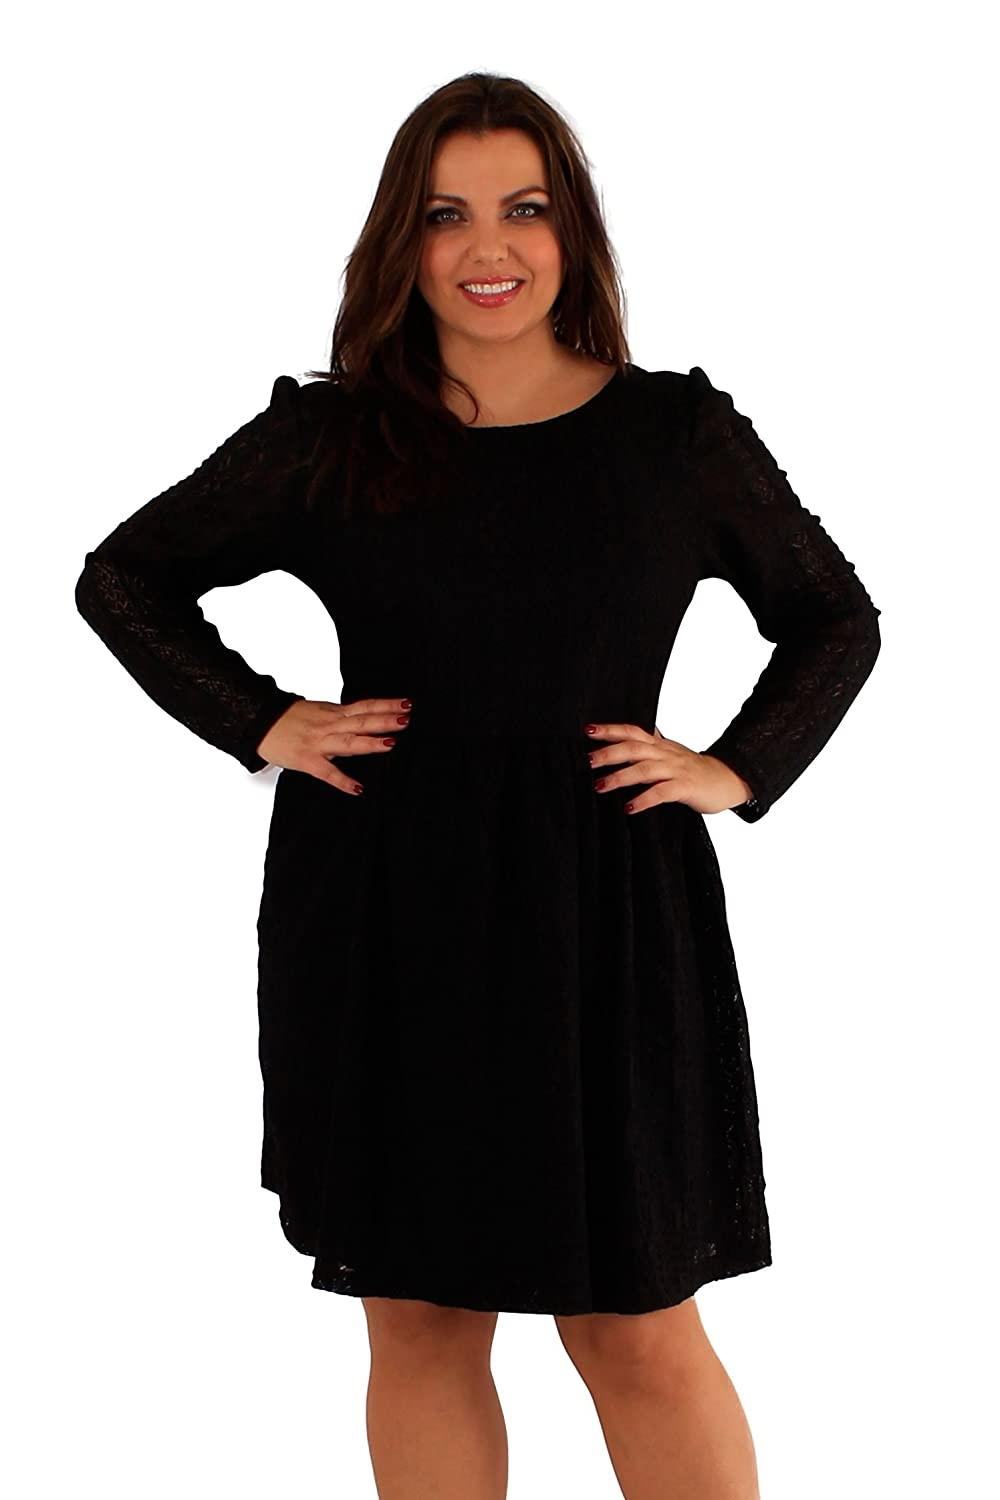 78d54951745 New Womens plus size lace Lined Full Sleeve Party Skater Dress   Amazon.co.uk  Clothing